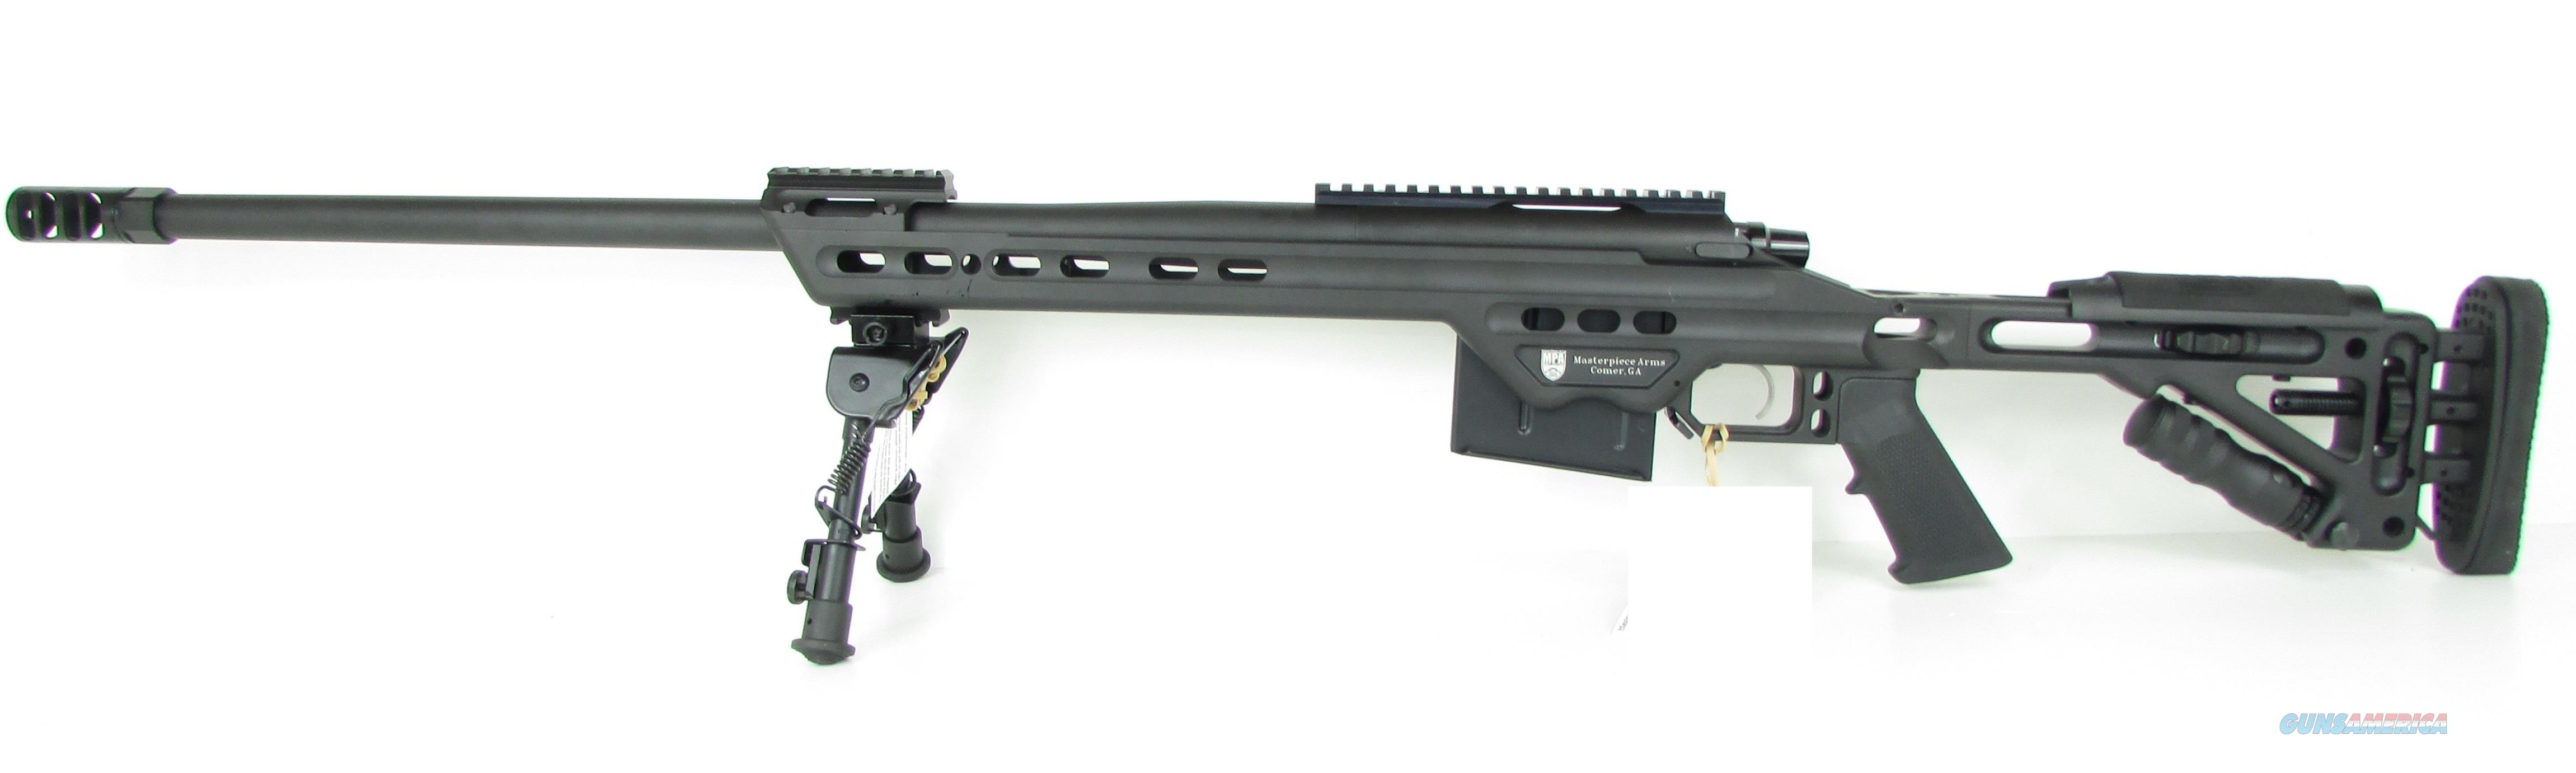 Masterpiece Arms Bolt Action 300Win 26 Ss Fltd W/ Brake MPA300WMBA  Guns > Rifles > MN Misc Rifles